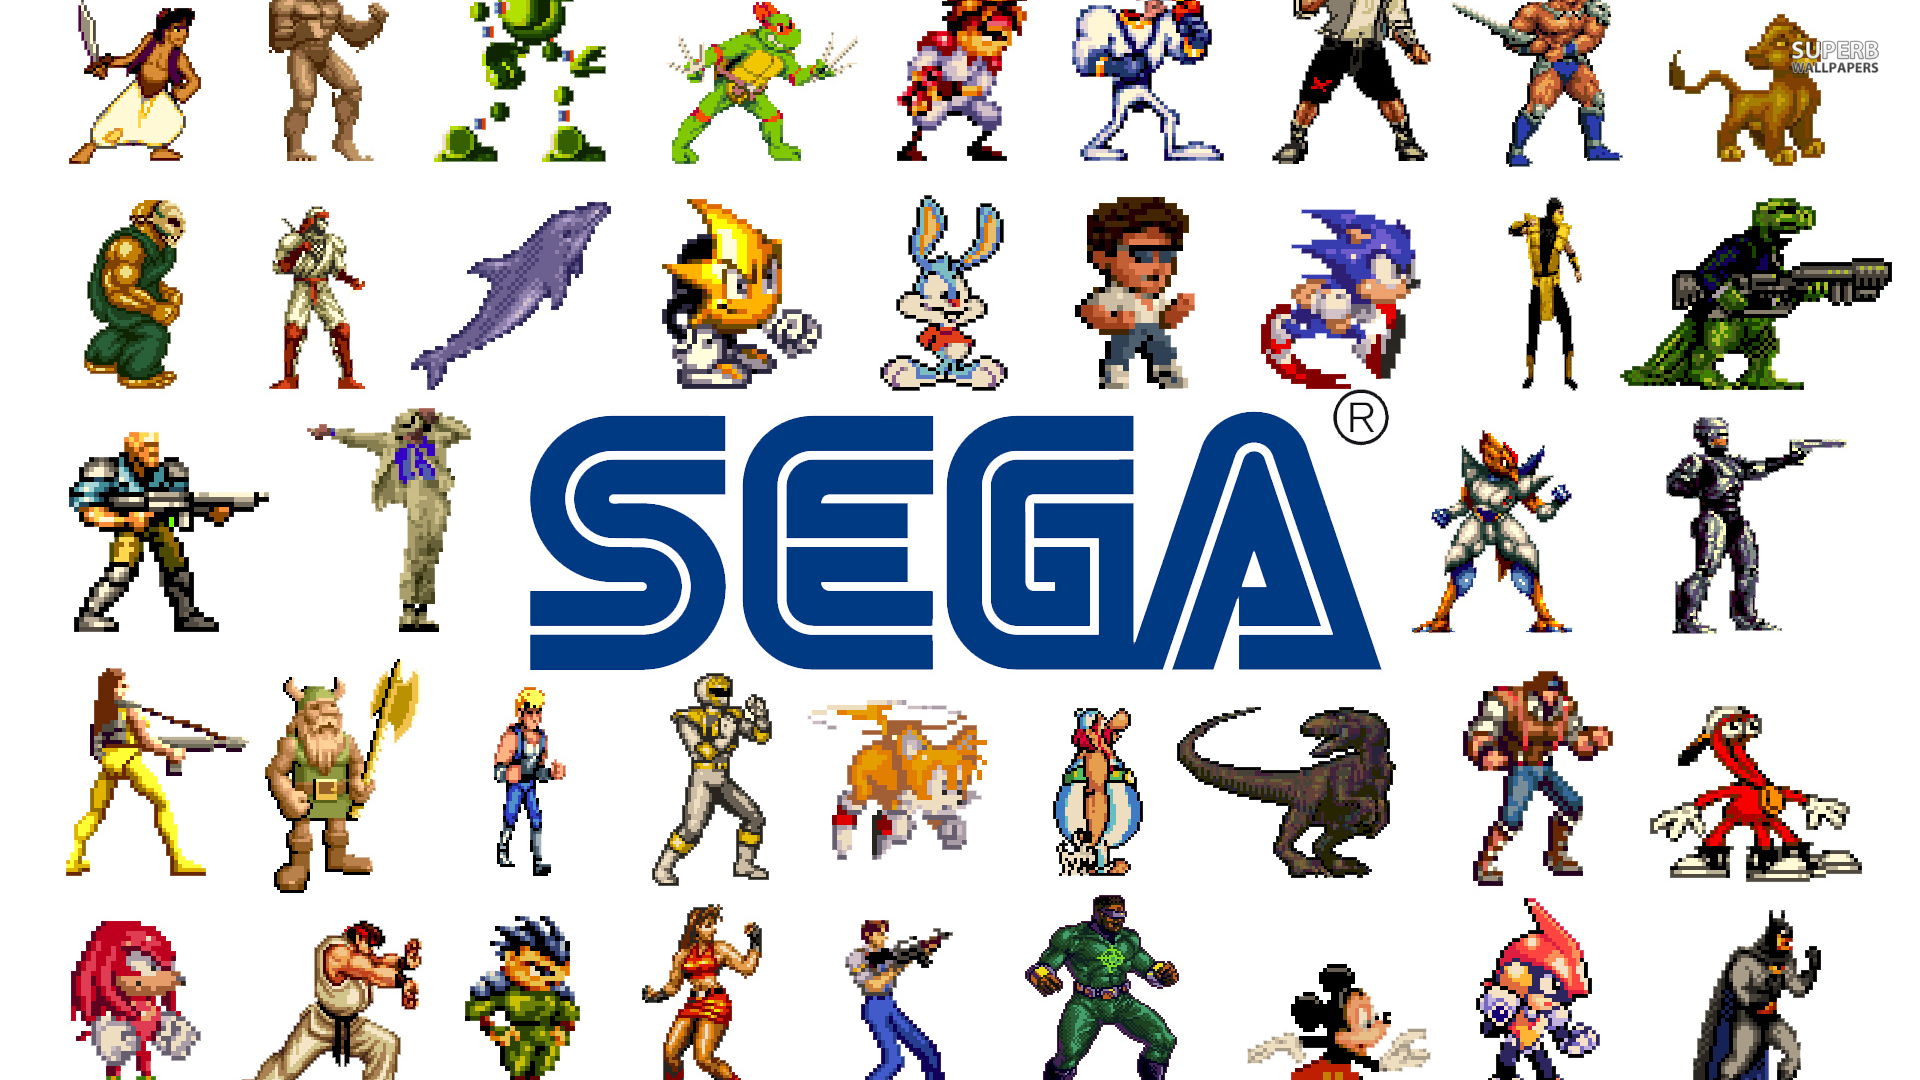 Sega logo and chars